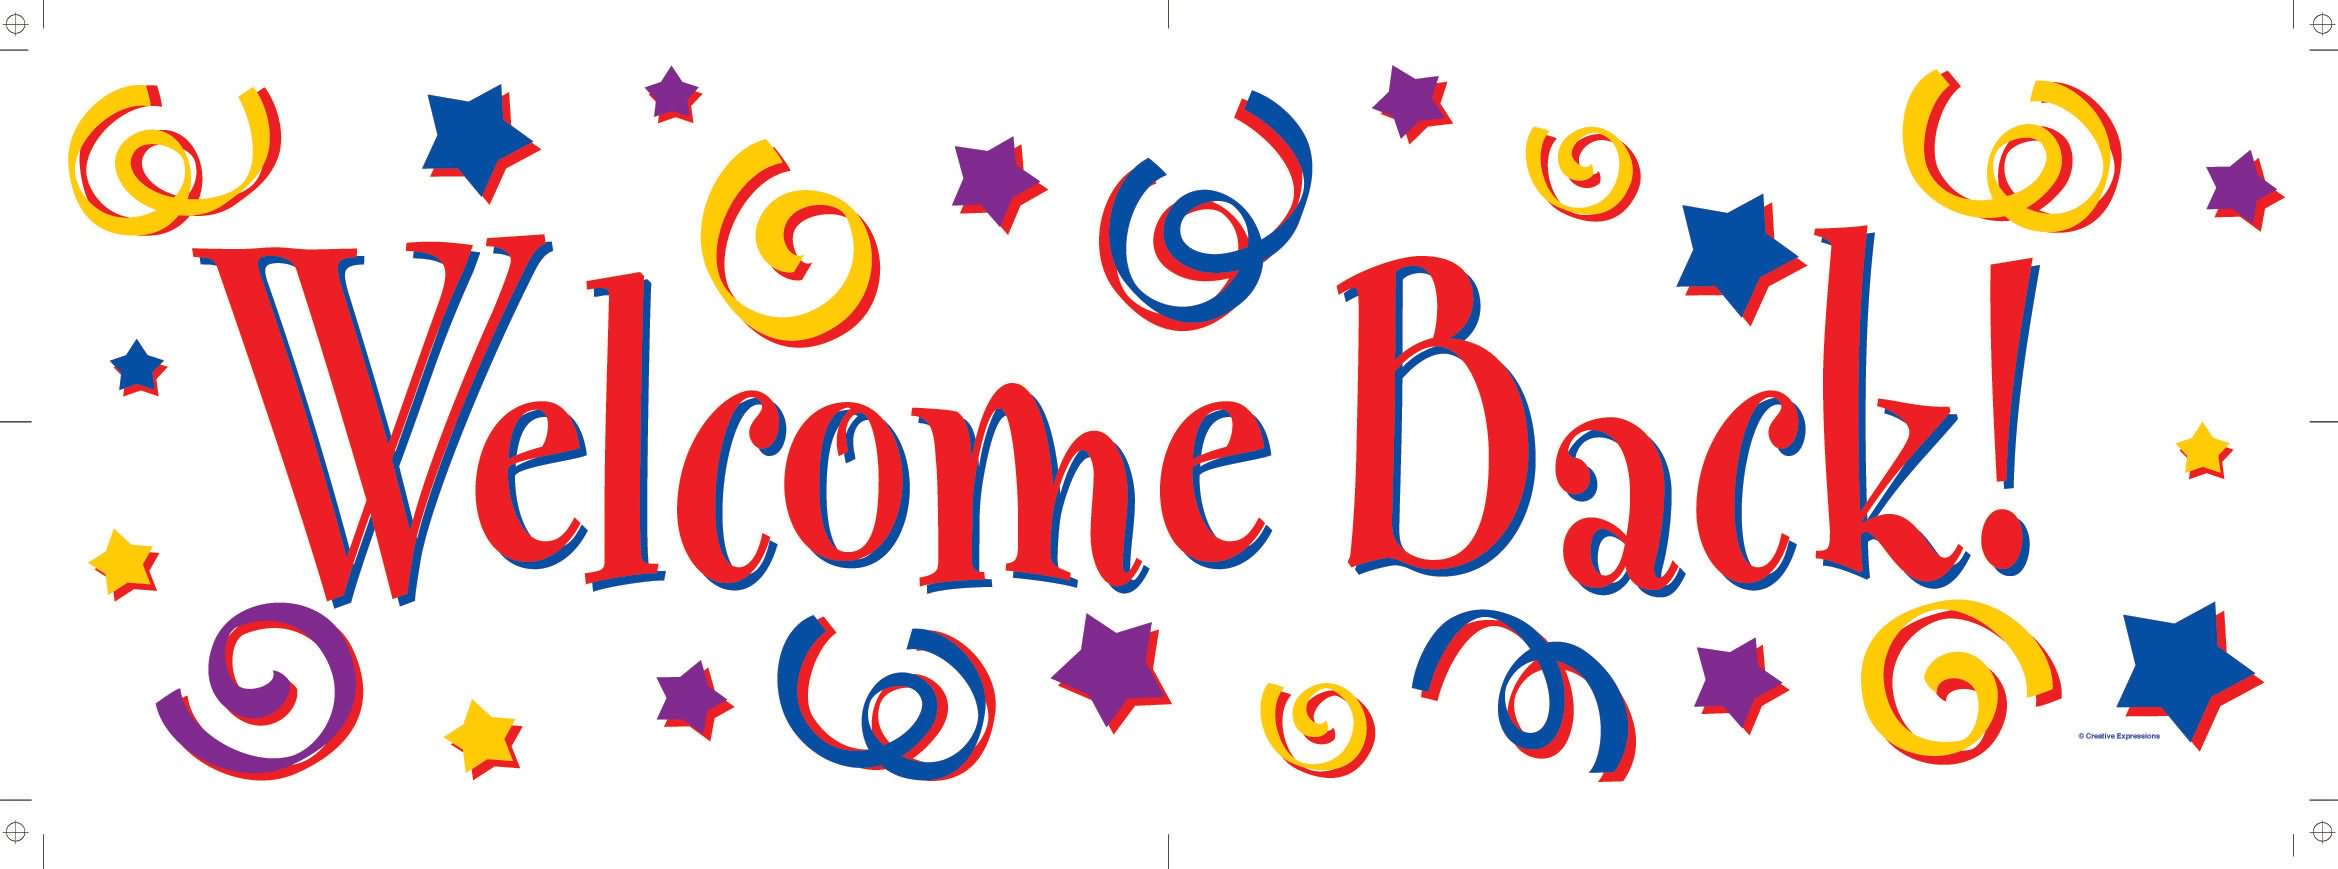 Welcome Clipart Clipart Cliparts For You-Welcome clipart clipart cliparts for you 3-18